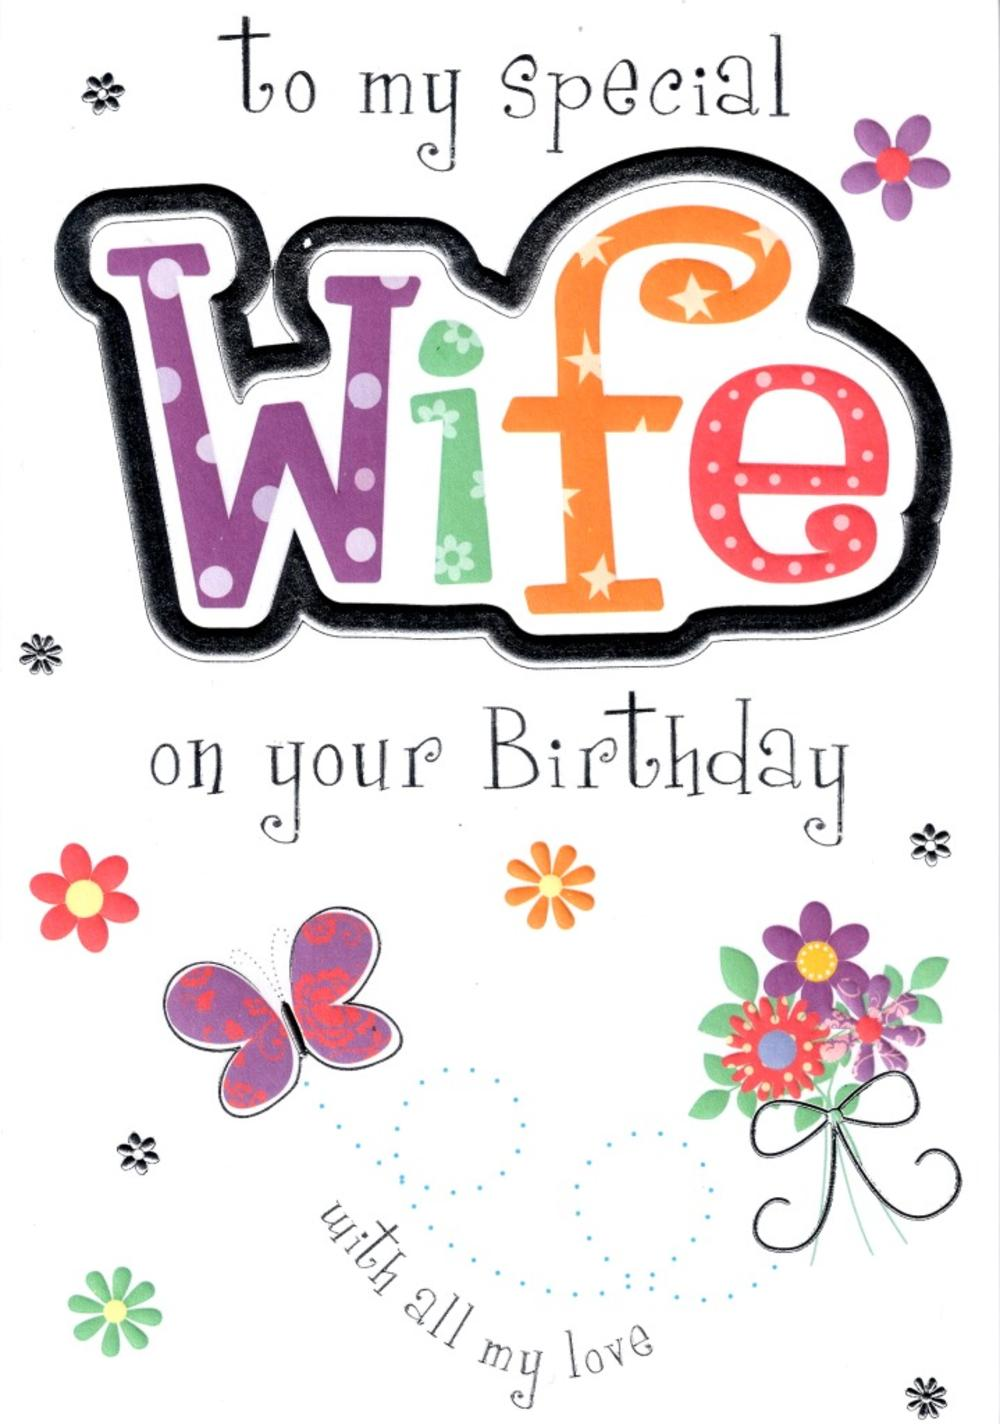 special wife birthday card  cards  love kates, Birthday card